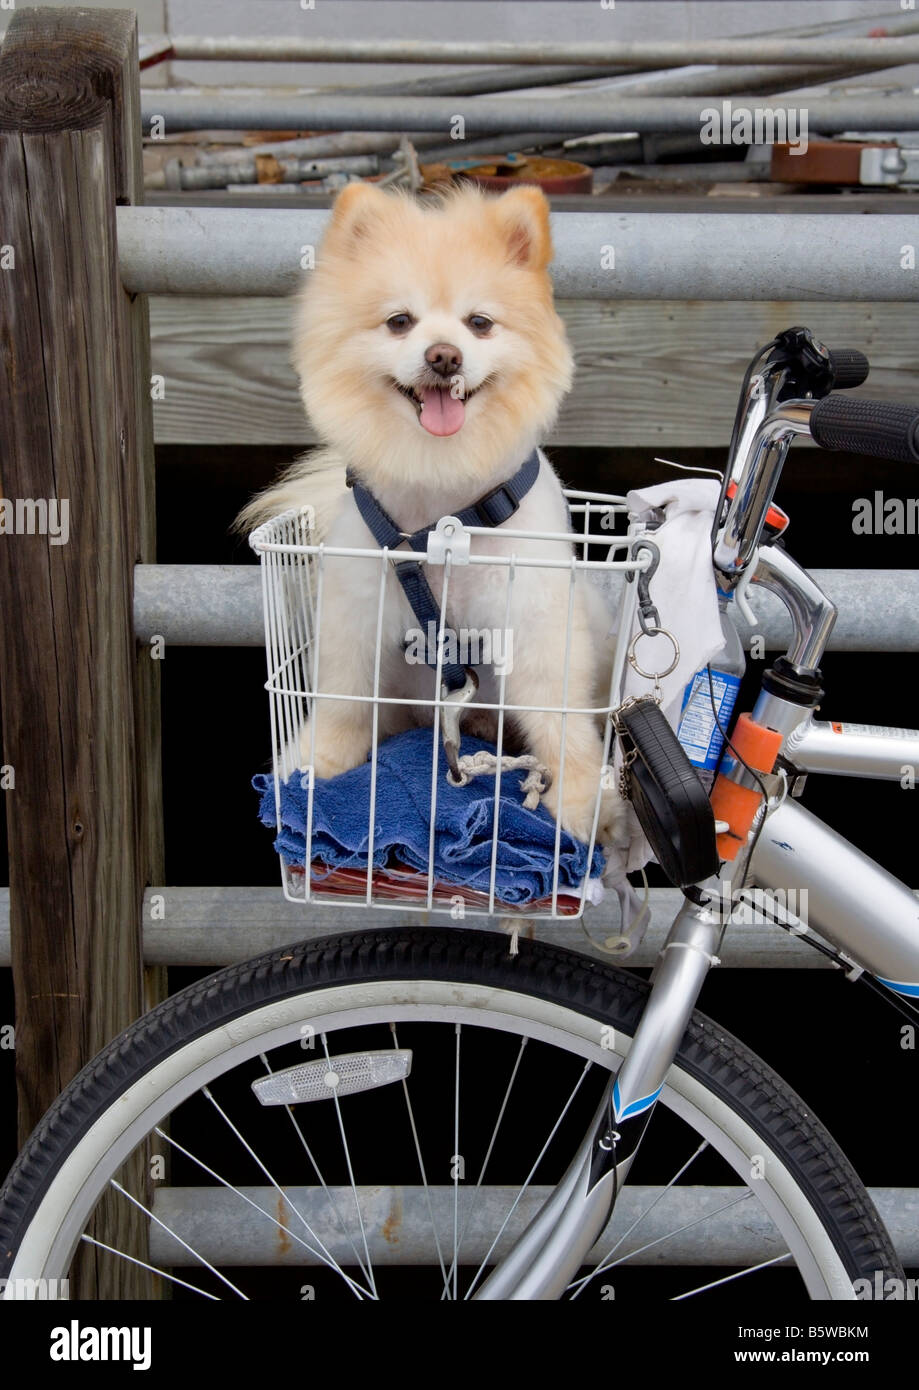 A Pomeranian waits for his master in a bicycle basket on the Harborwalk in Georgetown, South Carolina. - Stock Image